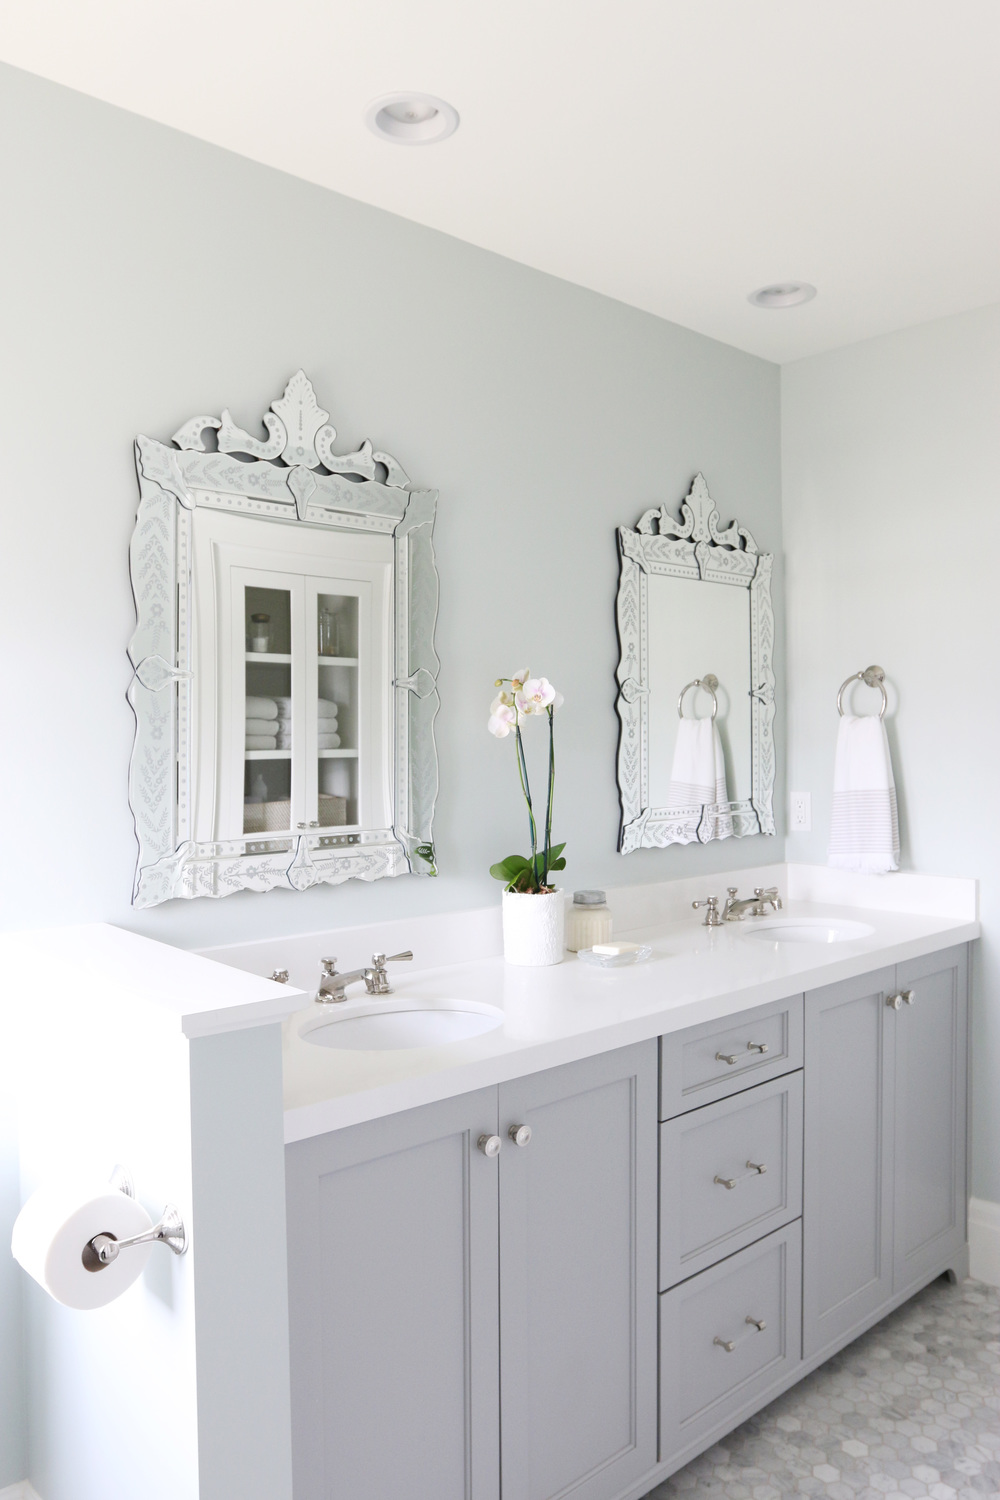 The midway house guest bathroom studio mcgee Bathroom cabinets gray